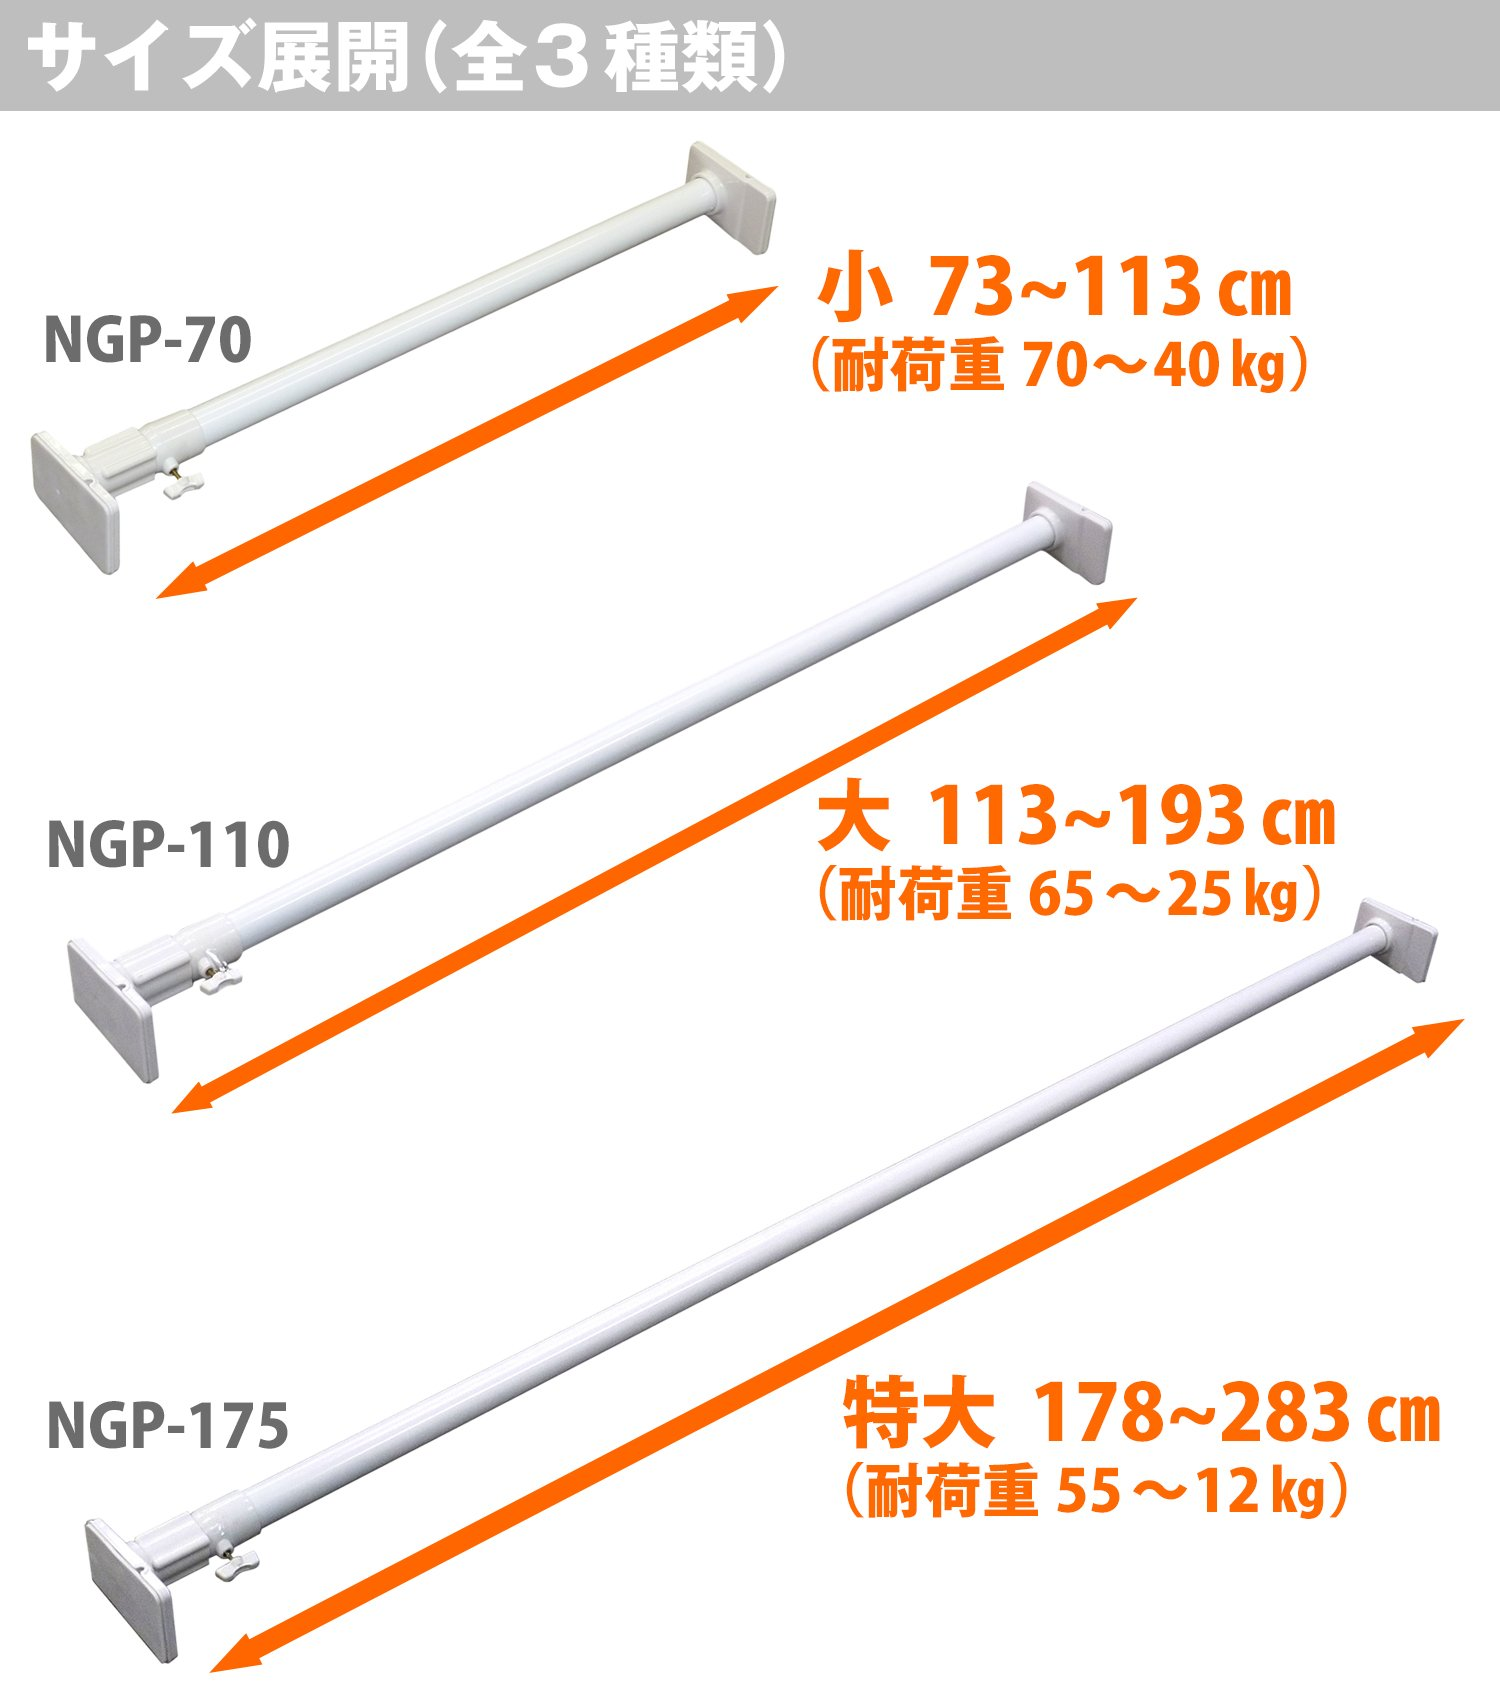 Flat 安伸 Copper Industrial Strong Chunky Type Tension Rod White by Hei Annin copper industry (Image #8)